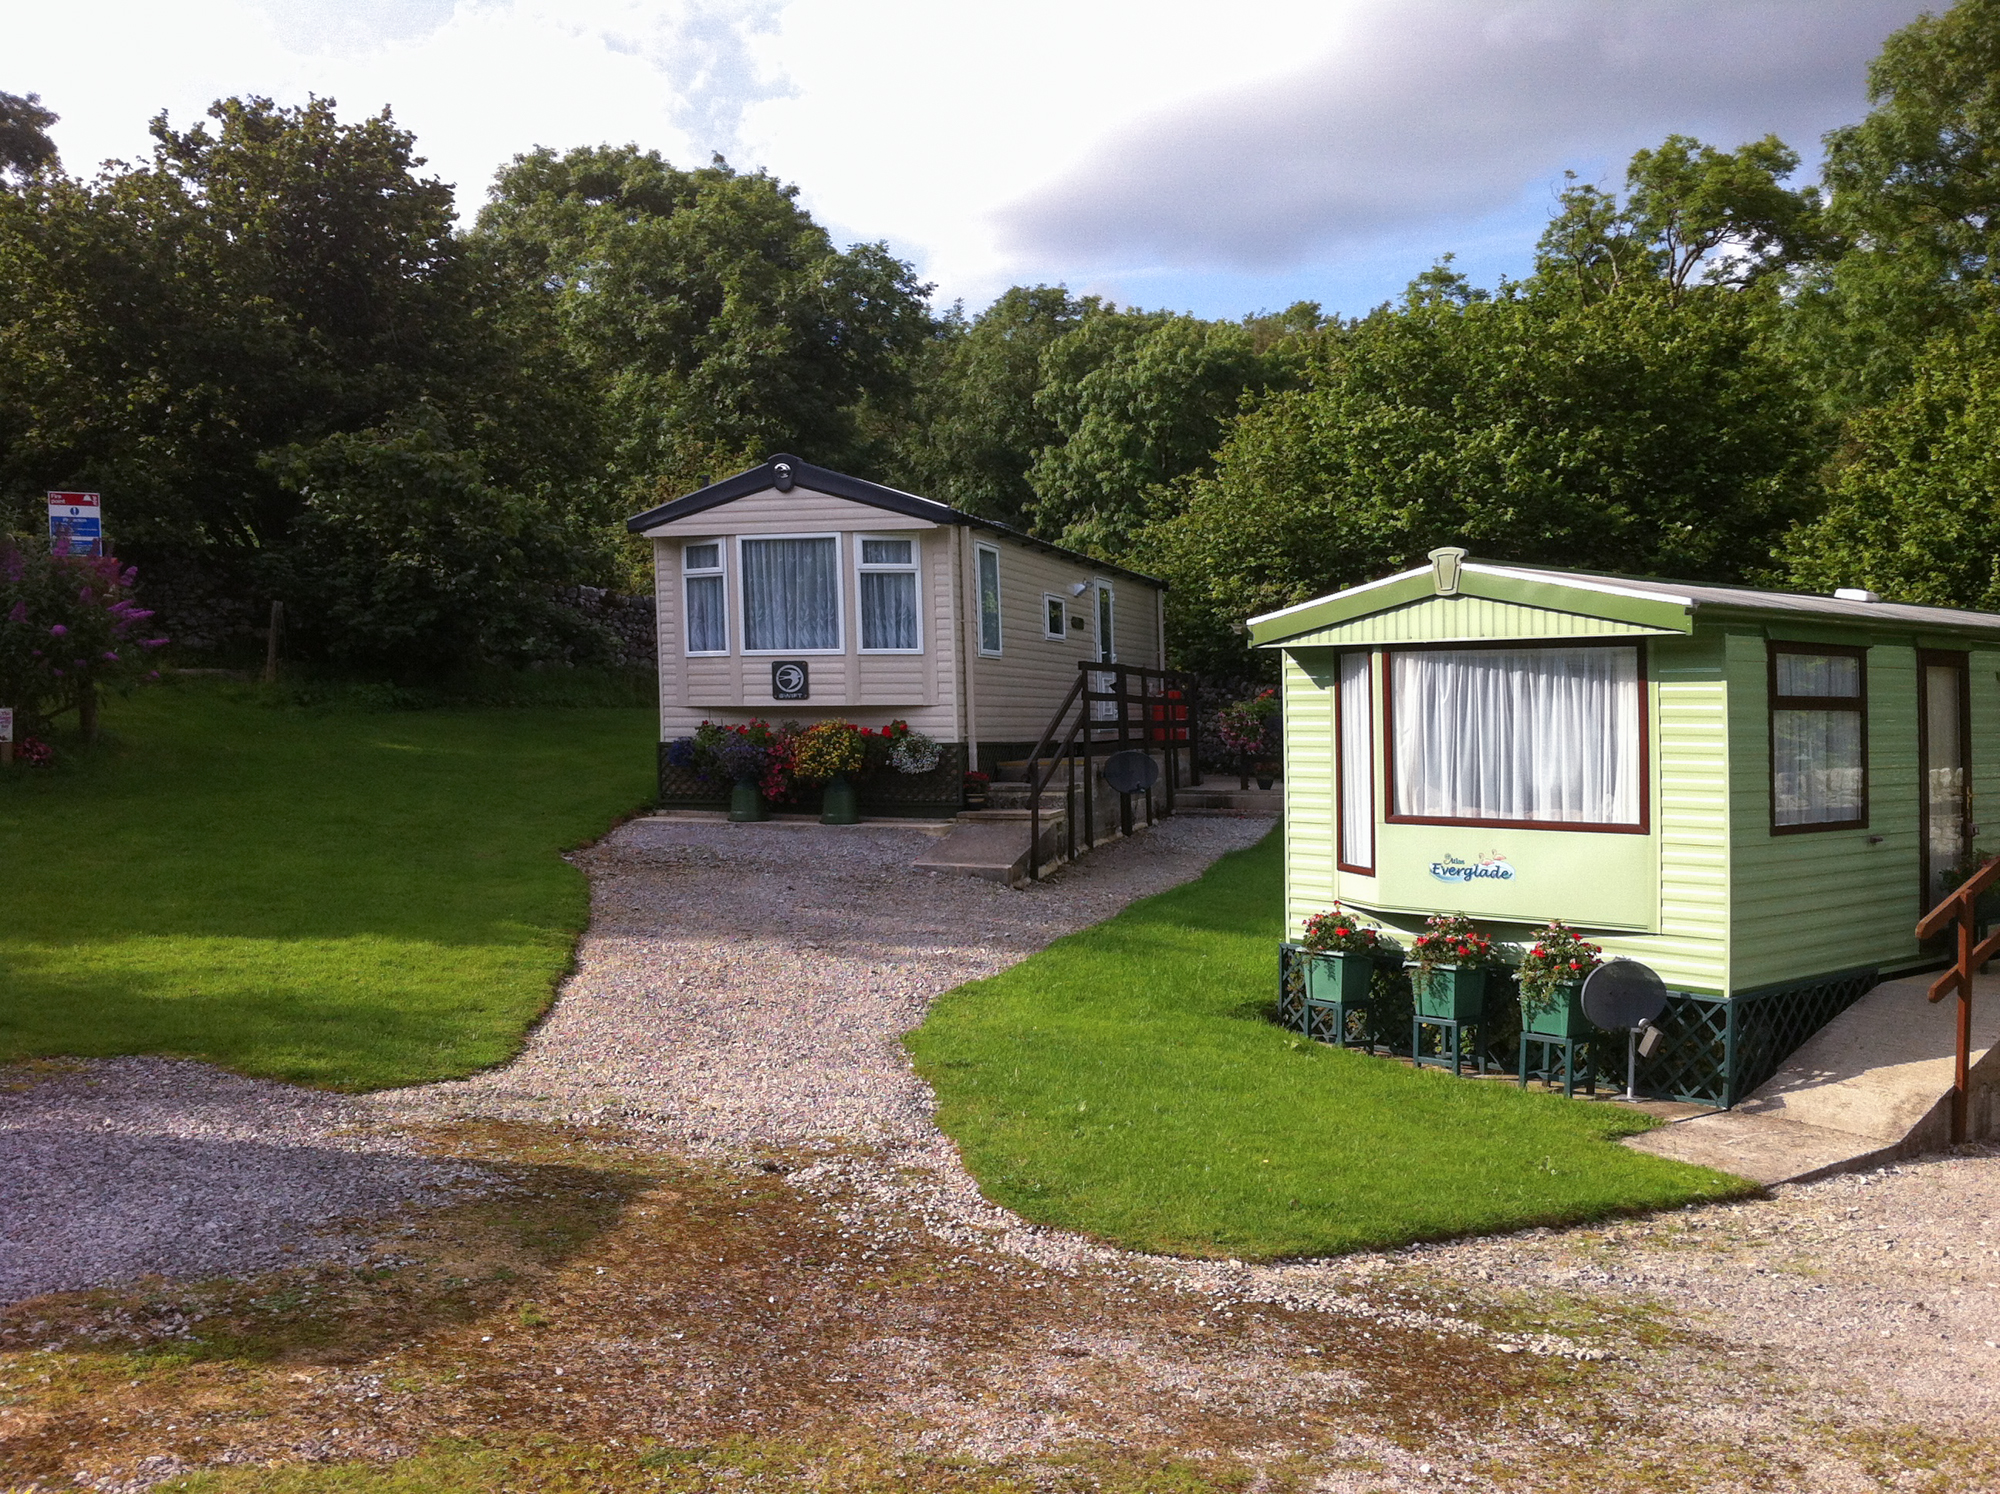 For Sale - Wood Nook Caravan Park in the Yorkshire Dales